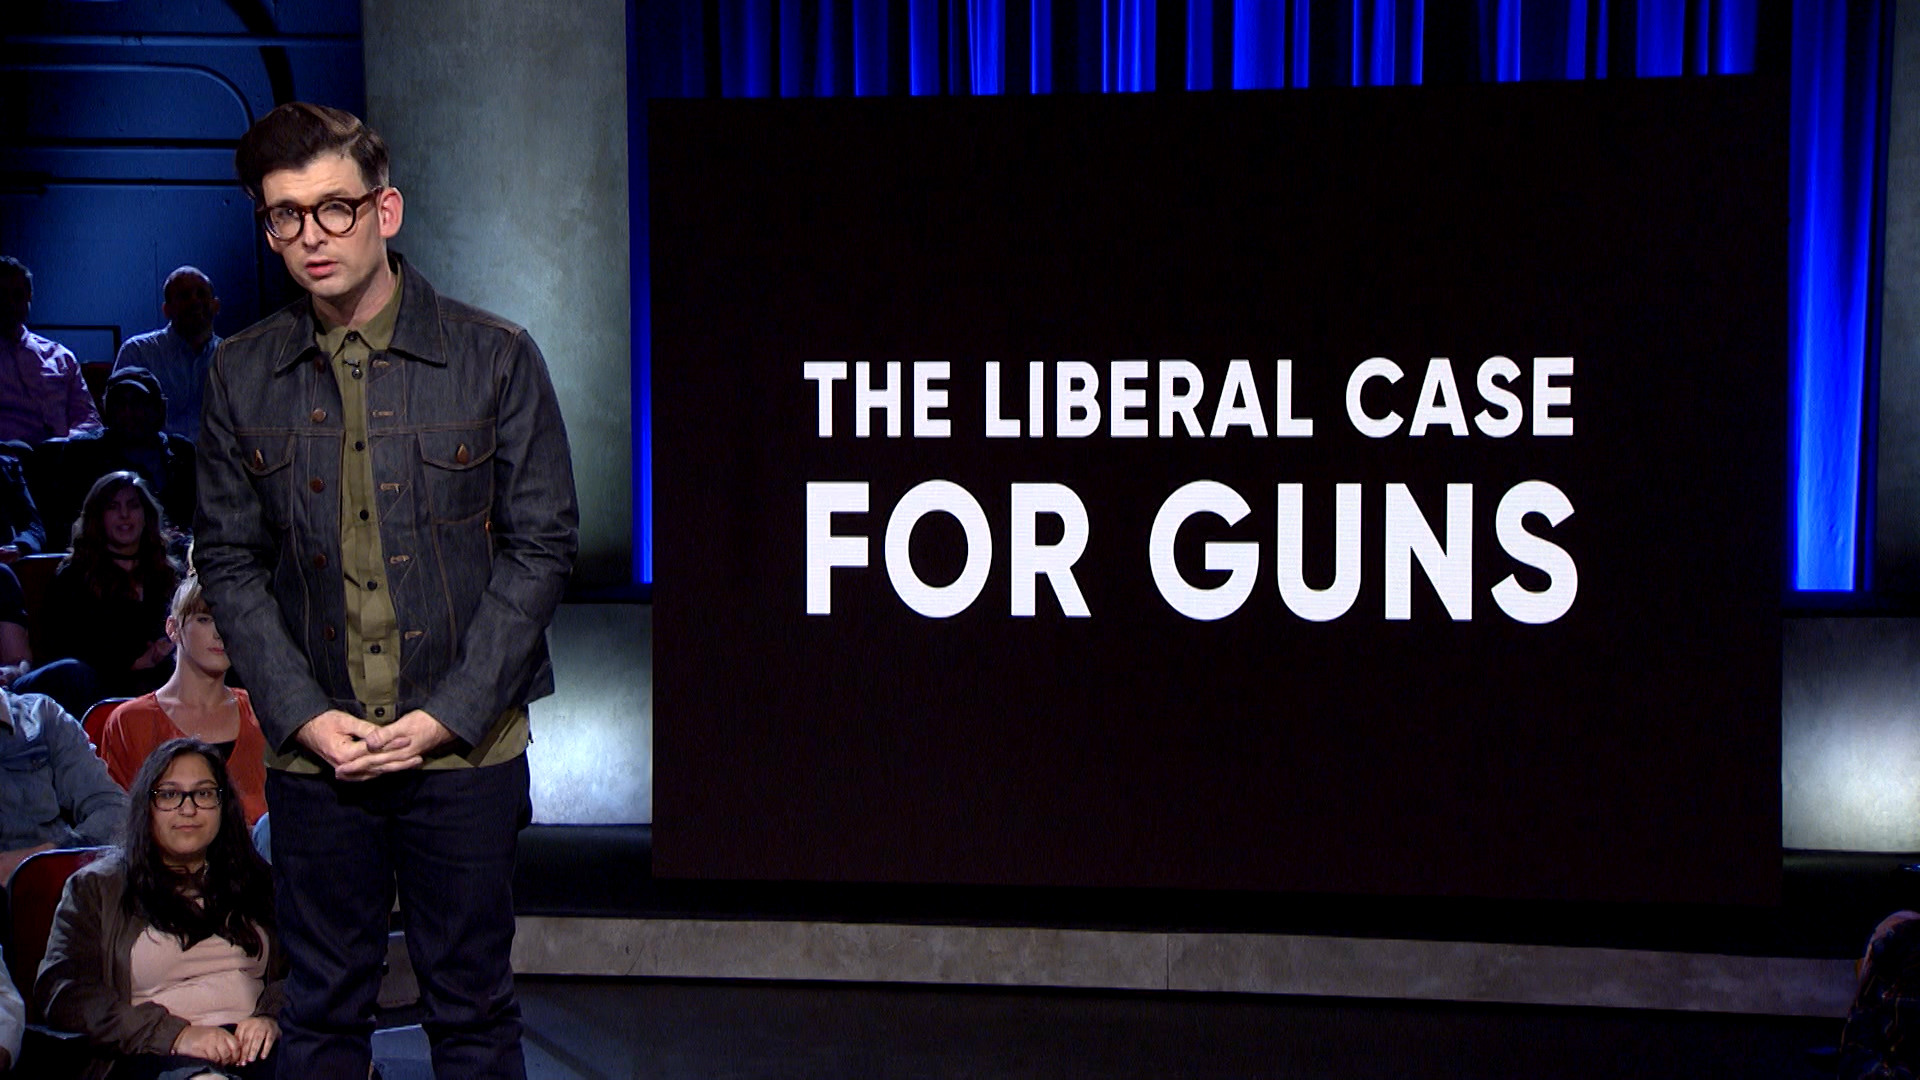 The Liberal Case for Guns